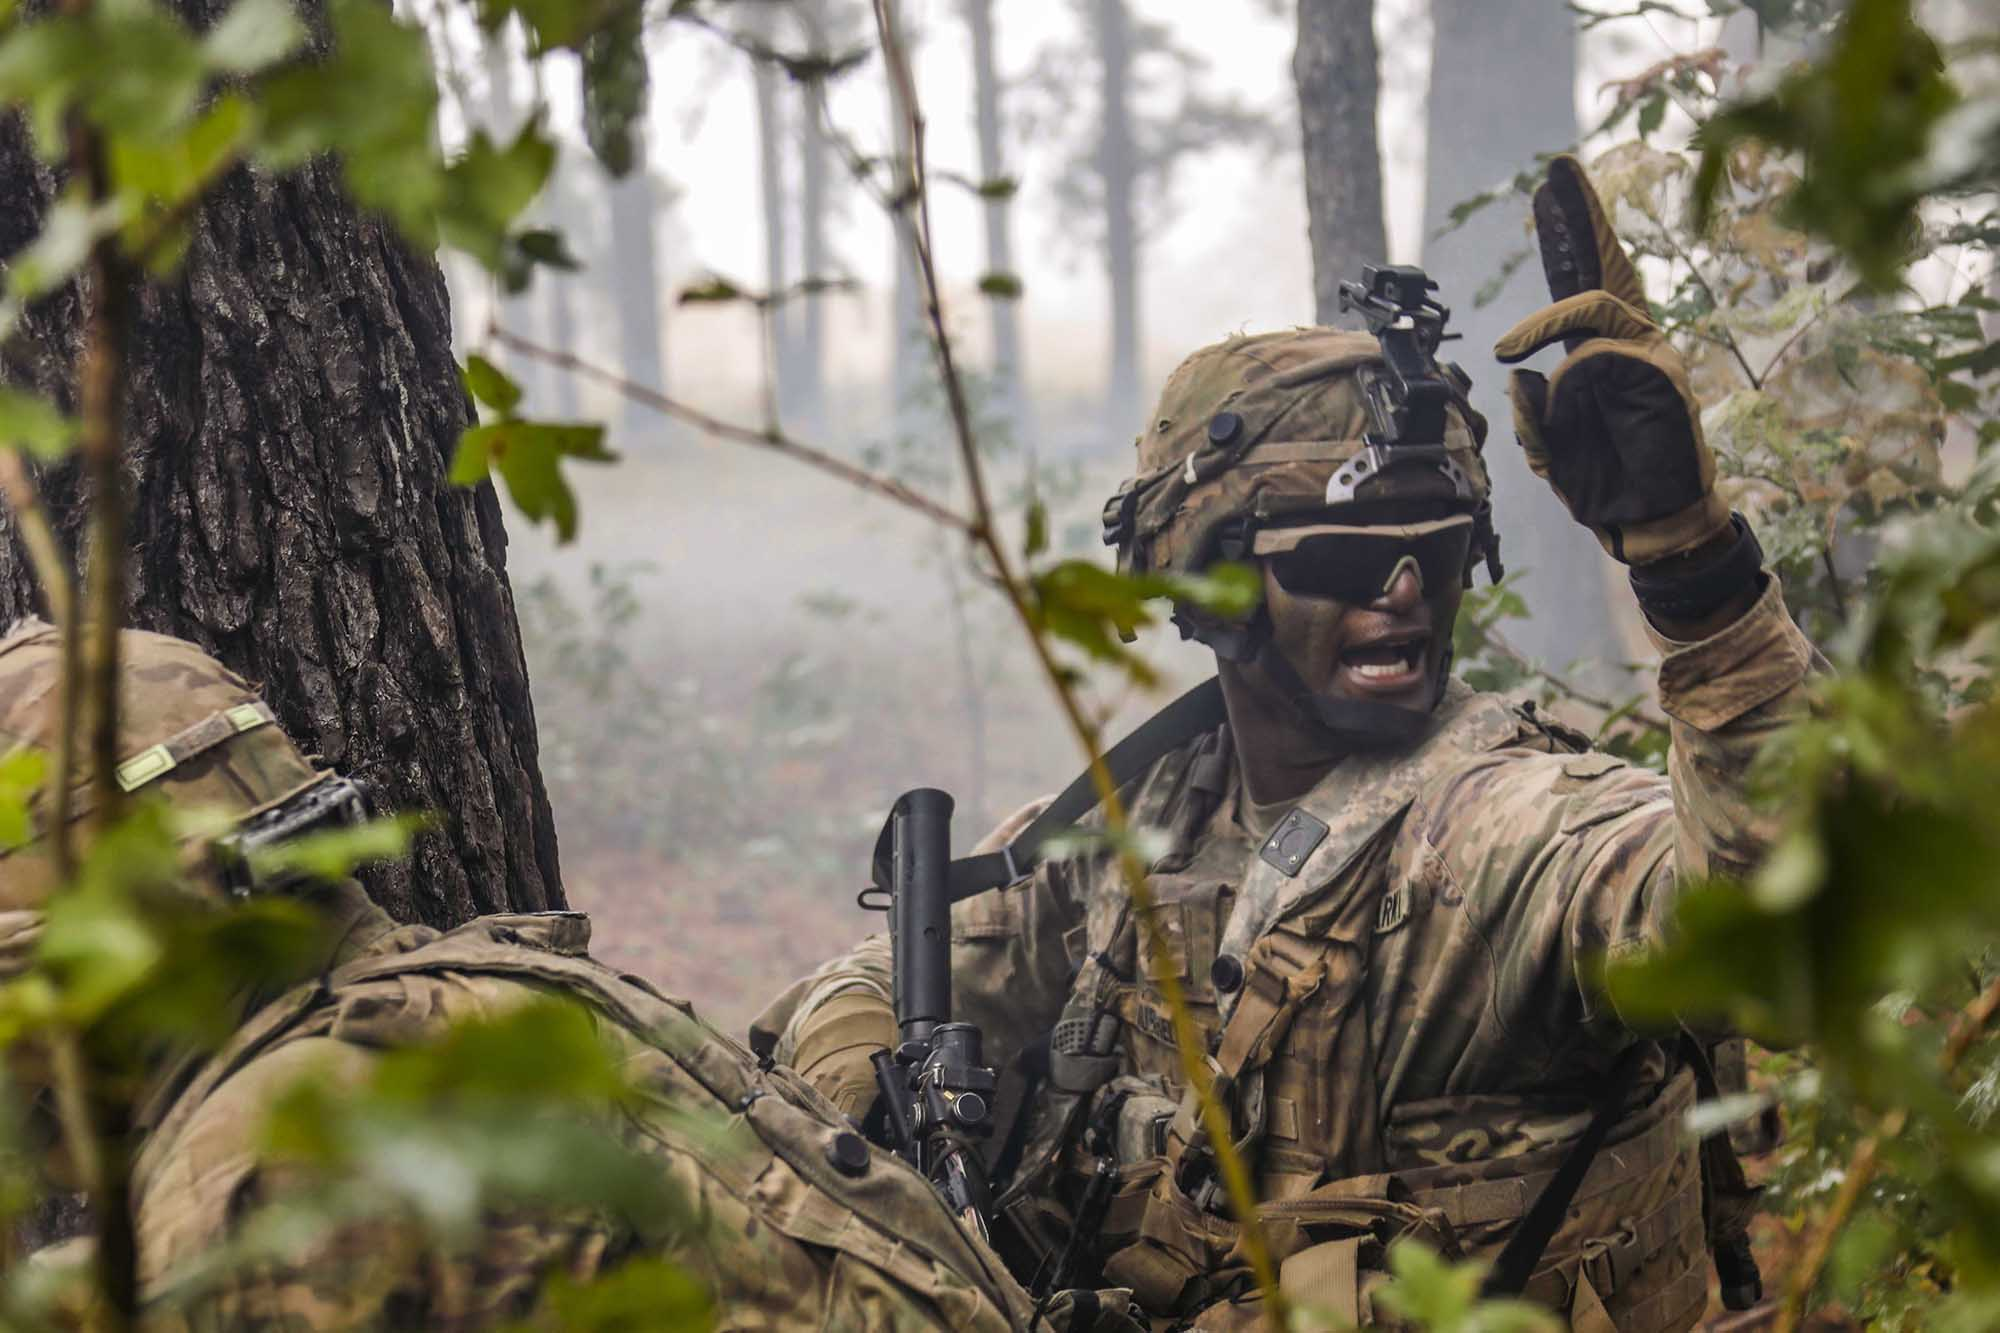 A combat engineer motions his team toward the breach point during the final live-fire exercise of rotation 21-01 on Oct. 27, 2020, at the Joint Readiness Training Center at Fort Polk, La. (Sgt. Thomas Calvert/Army)